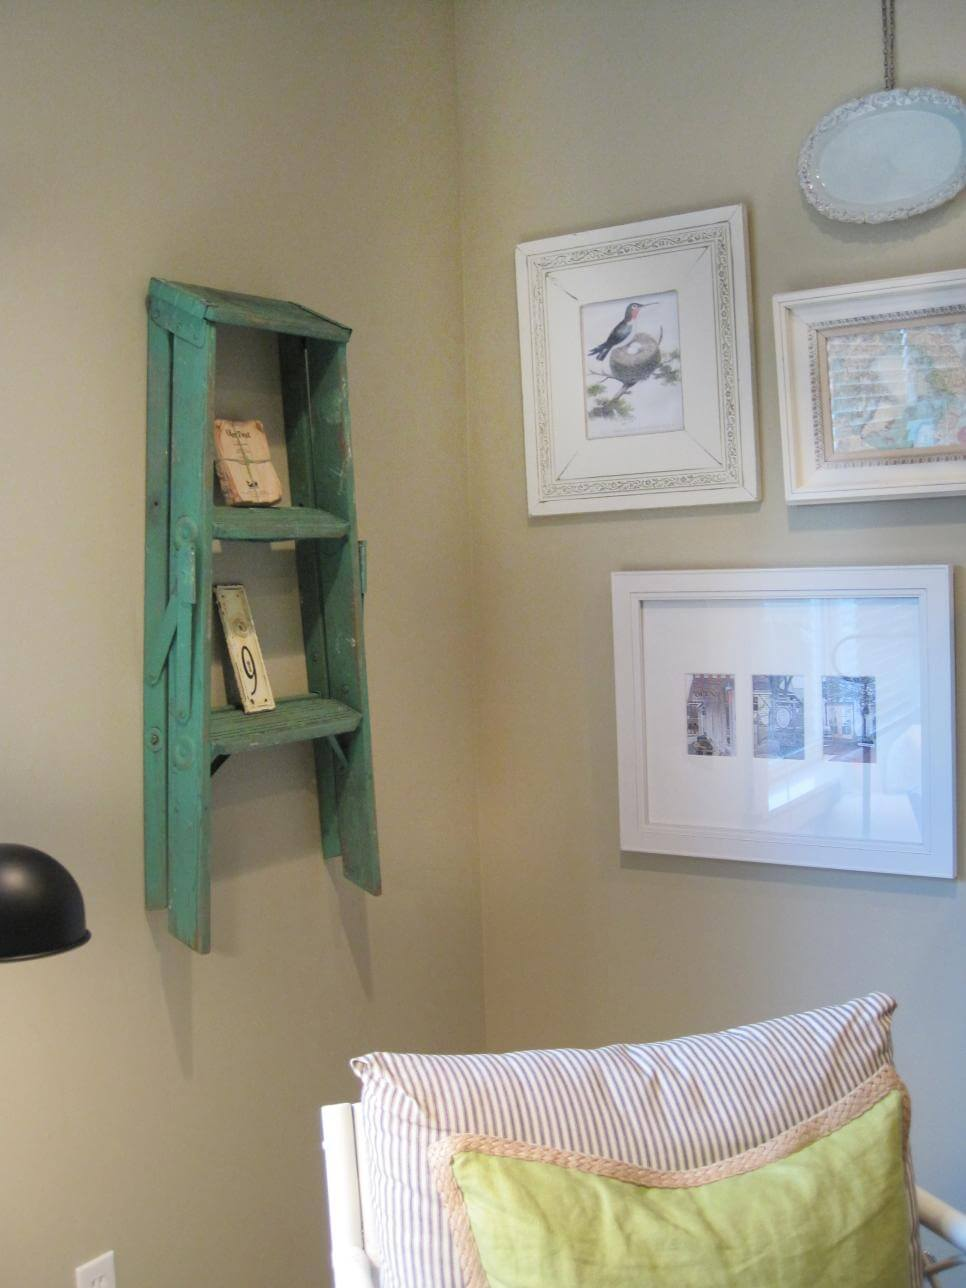 Easy Step Stool Wall Art